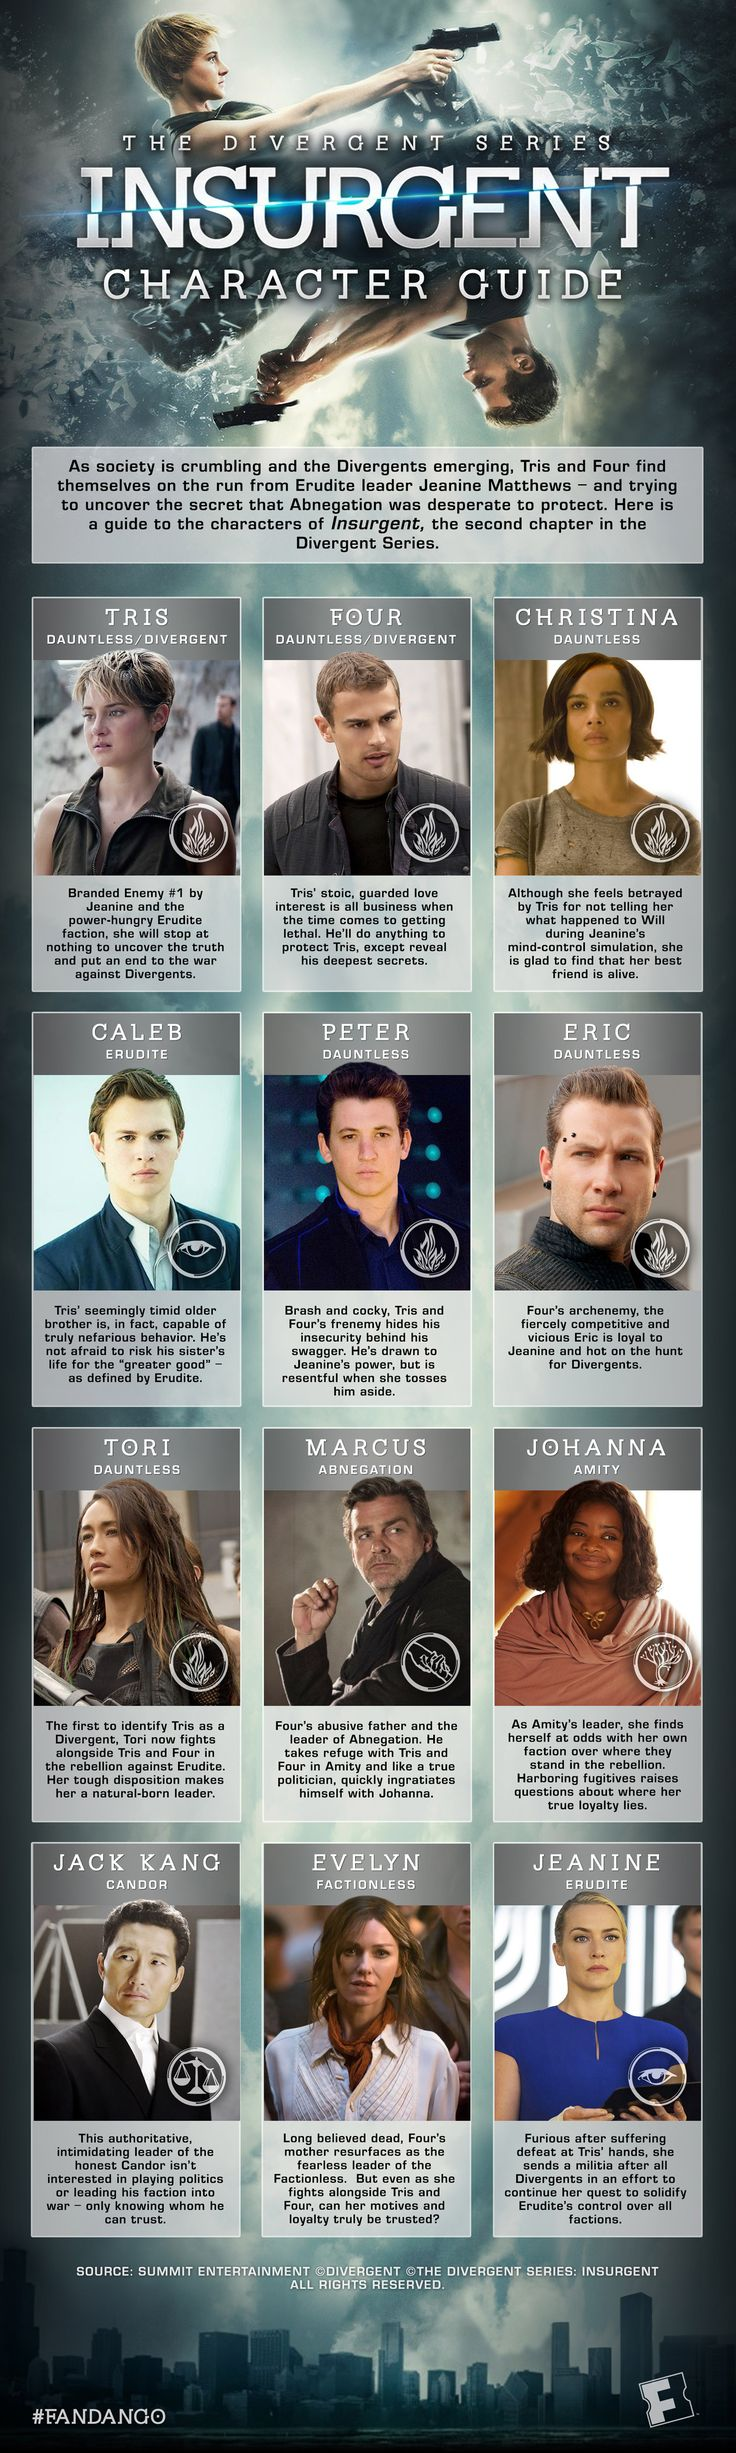 Who is who? Factions, faces, names, find it all out in this #Insurgent character guide